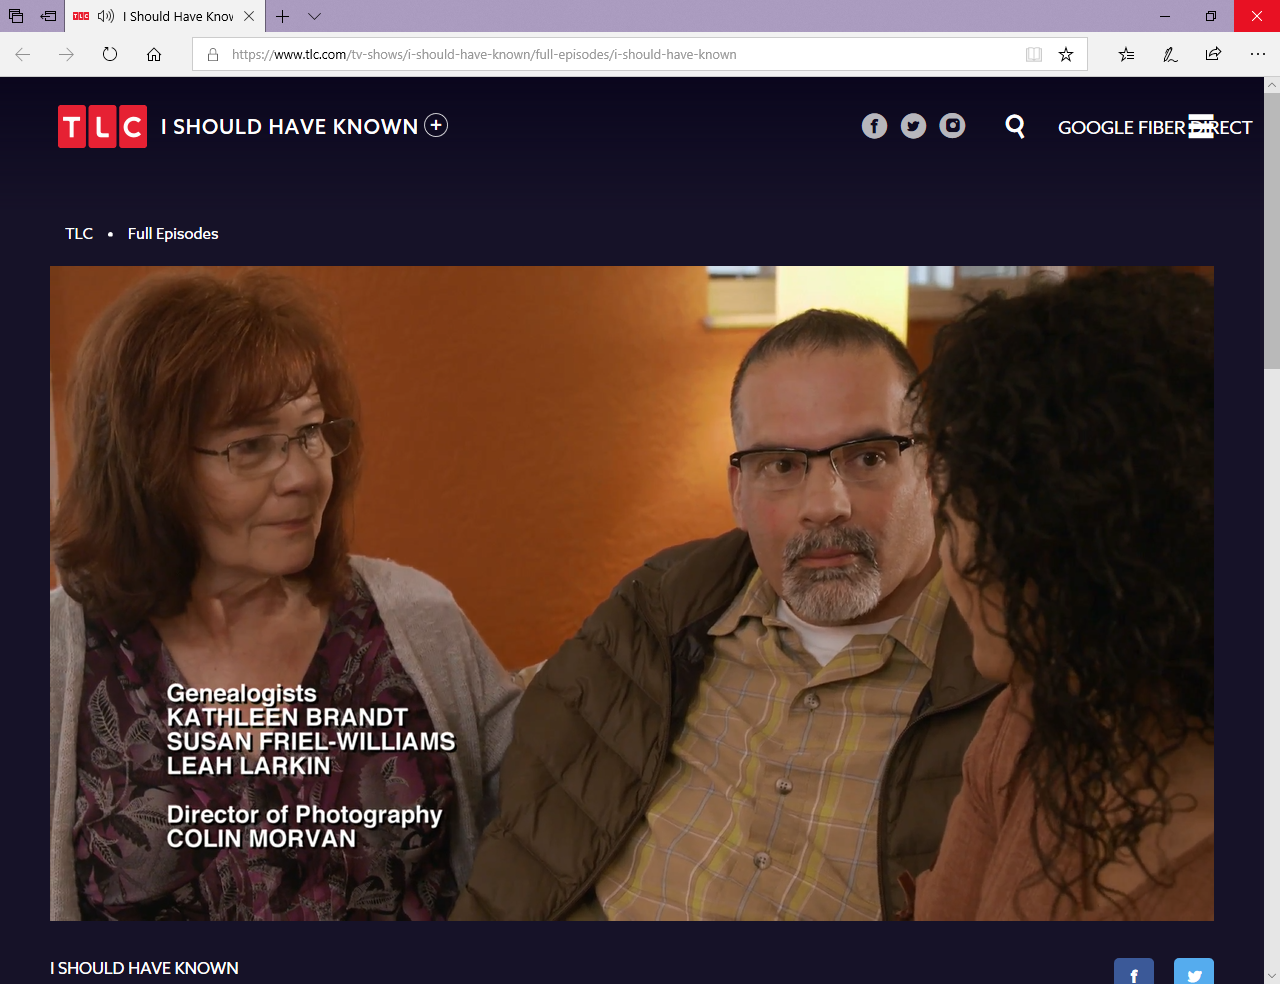 """Get Out Tlc Tv Show Full Episodes a3genealogy: new genealogy tv show - """"i should have known"""""""